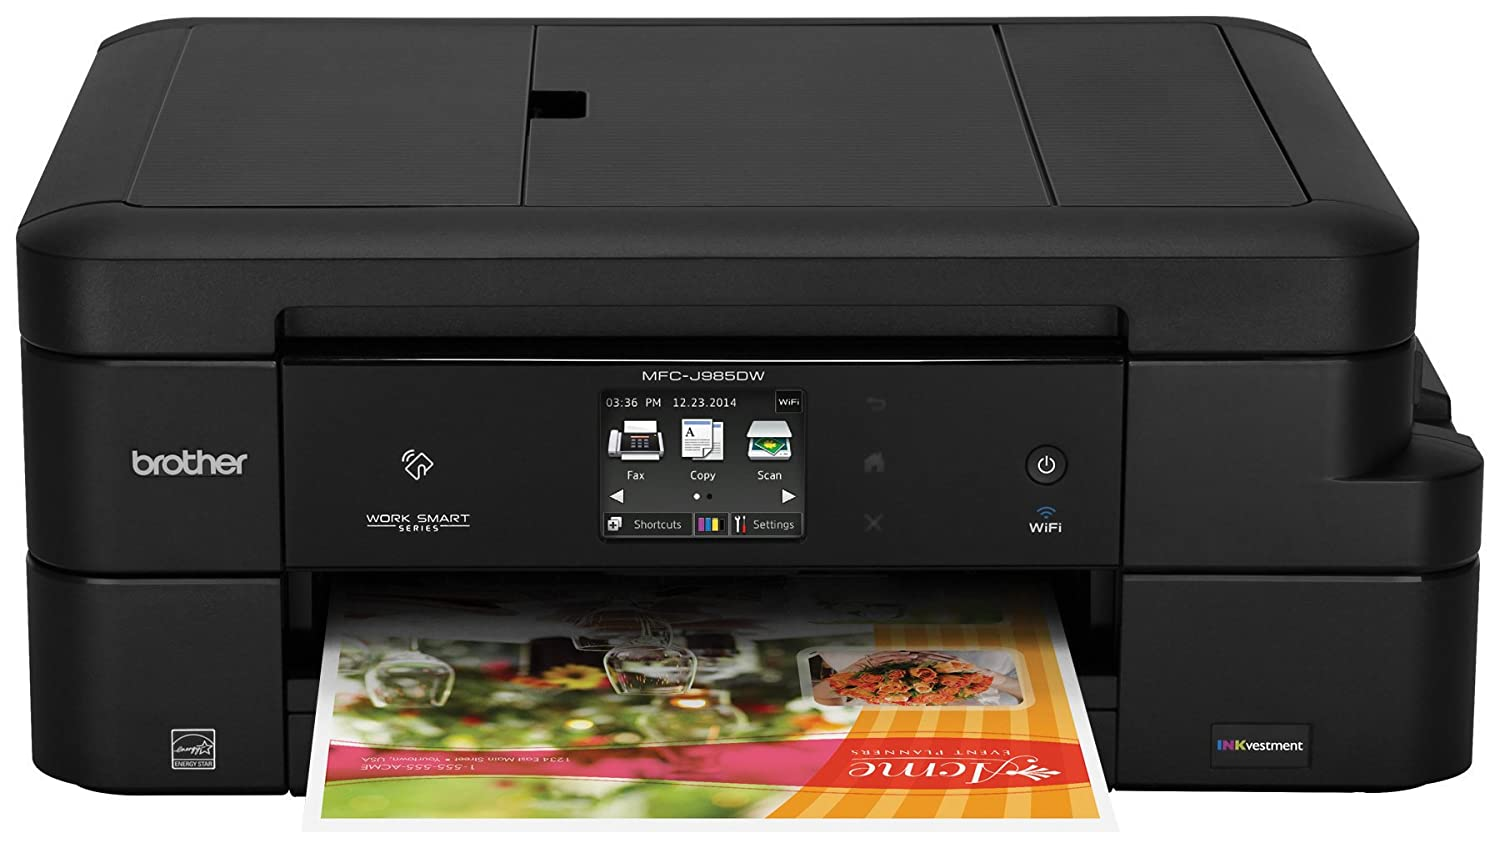 Brother Inkjet Printer, MFC-J985DW, Duplex Printing, Wireless Connectivity,  Cost-Effective Color Printer, Business Capable Features, Amazon Dash